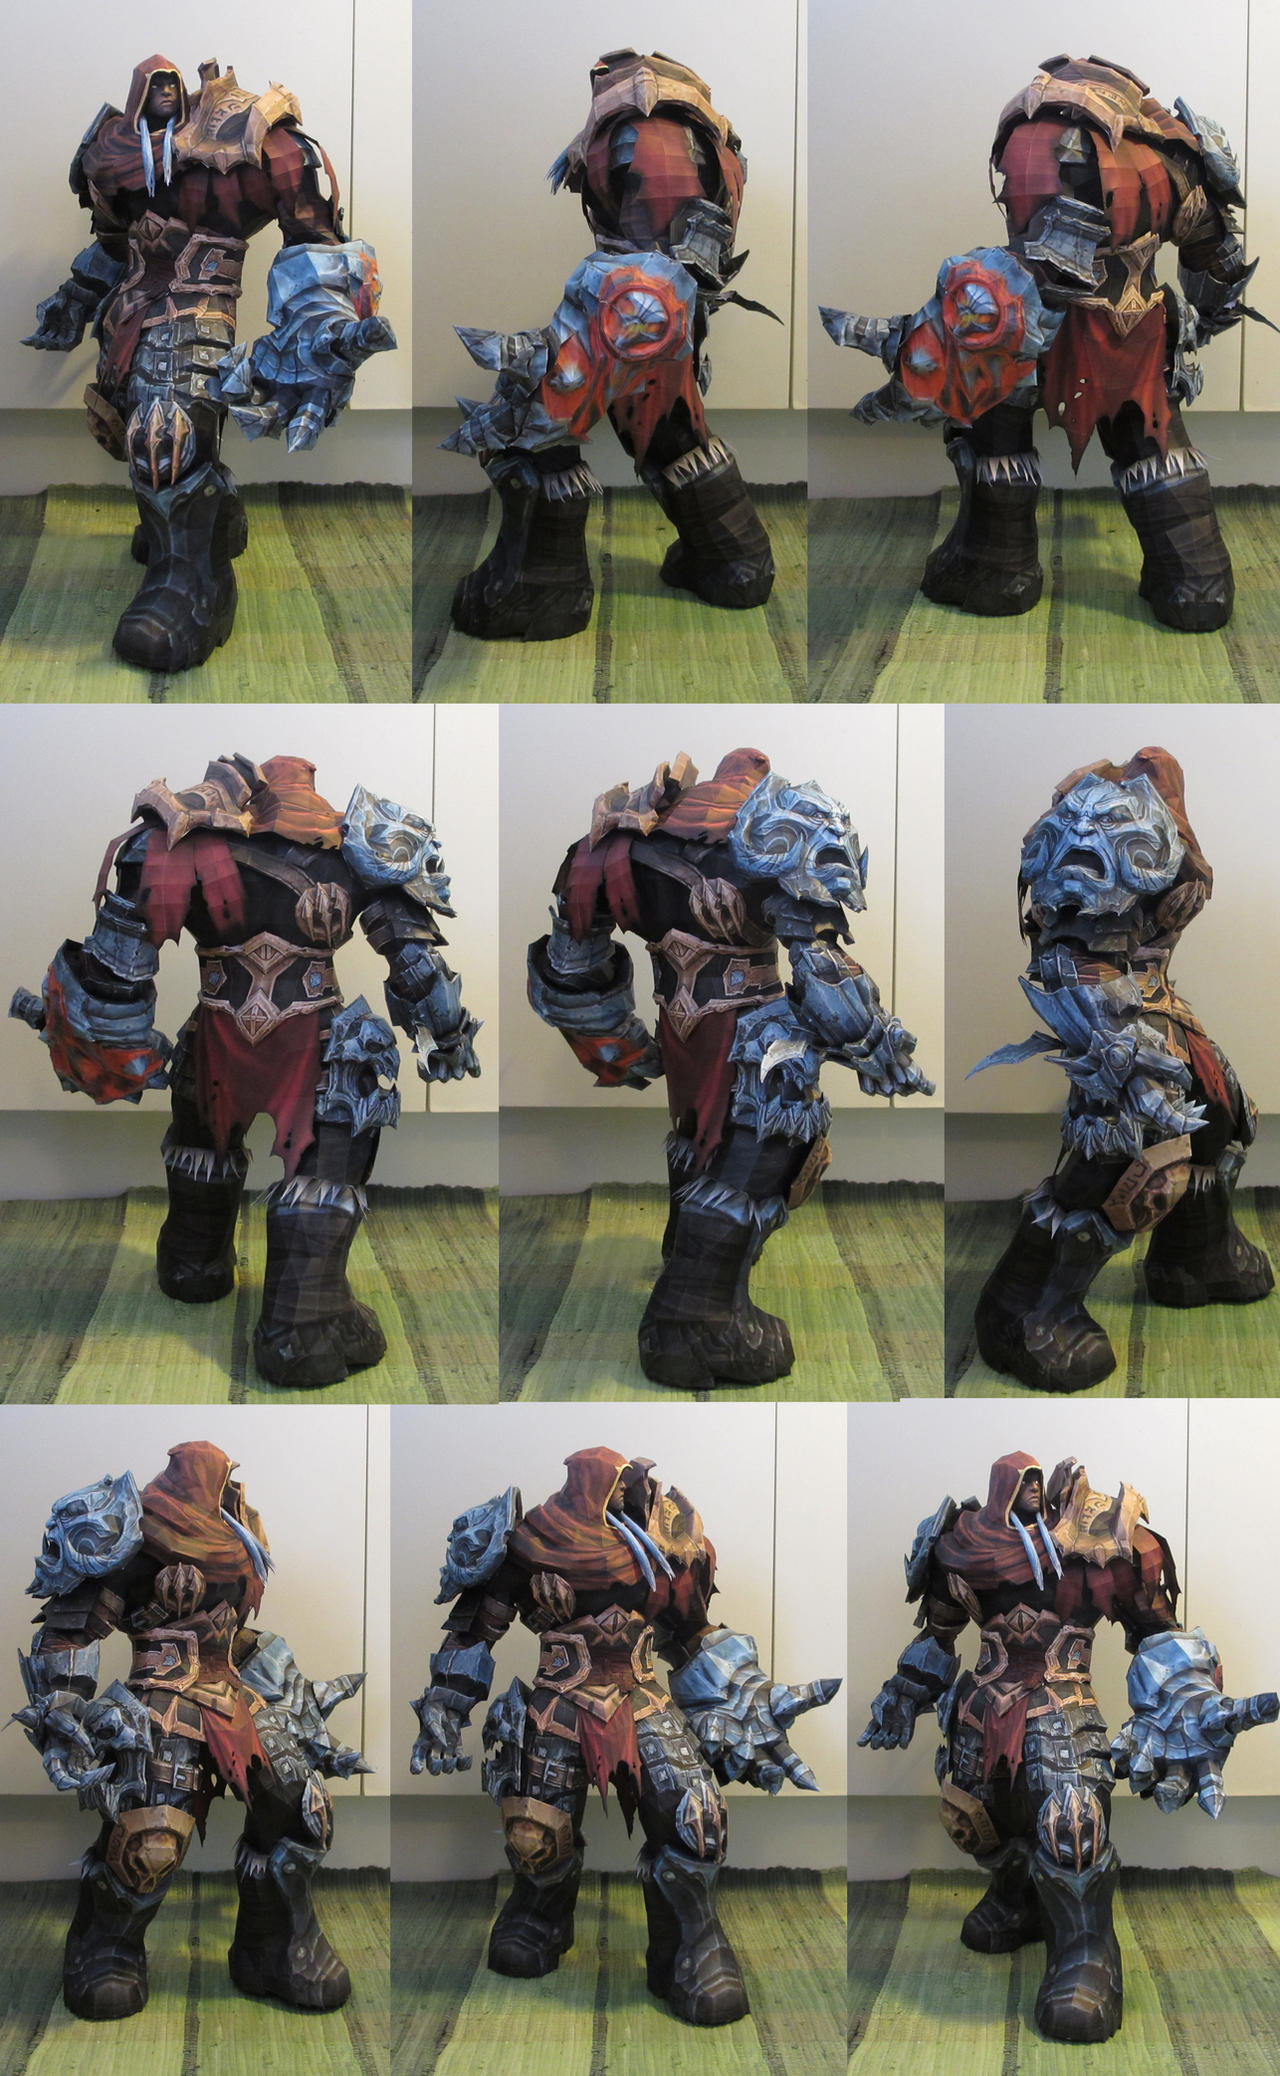 War from Darksiders papercraft collage by minidelirium